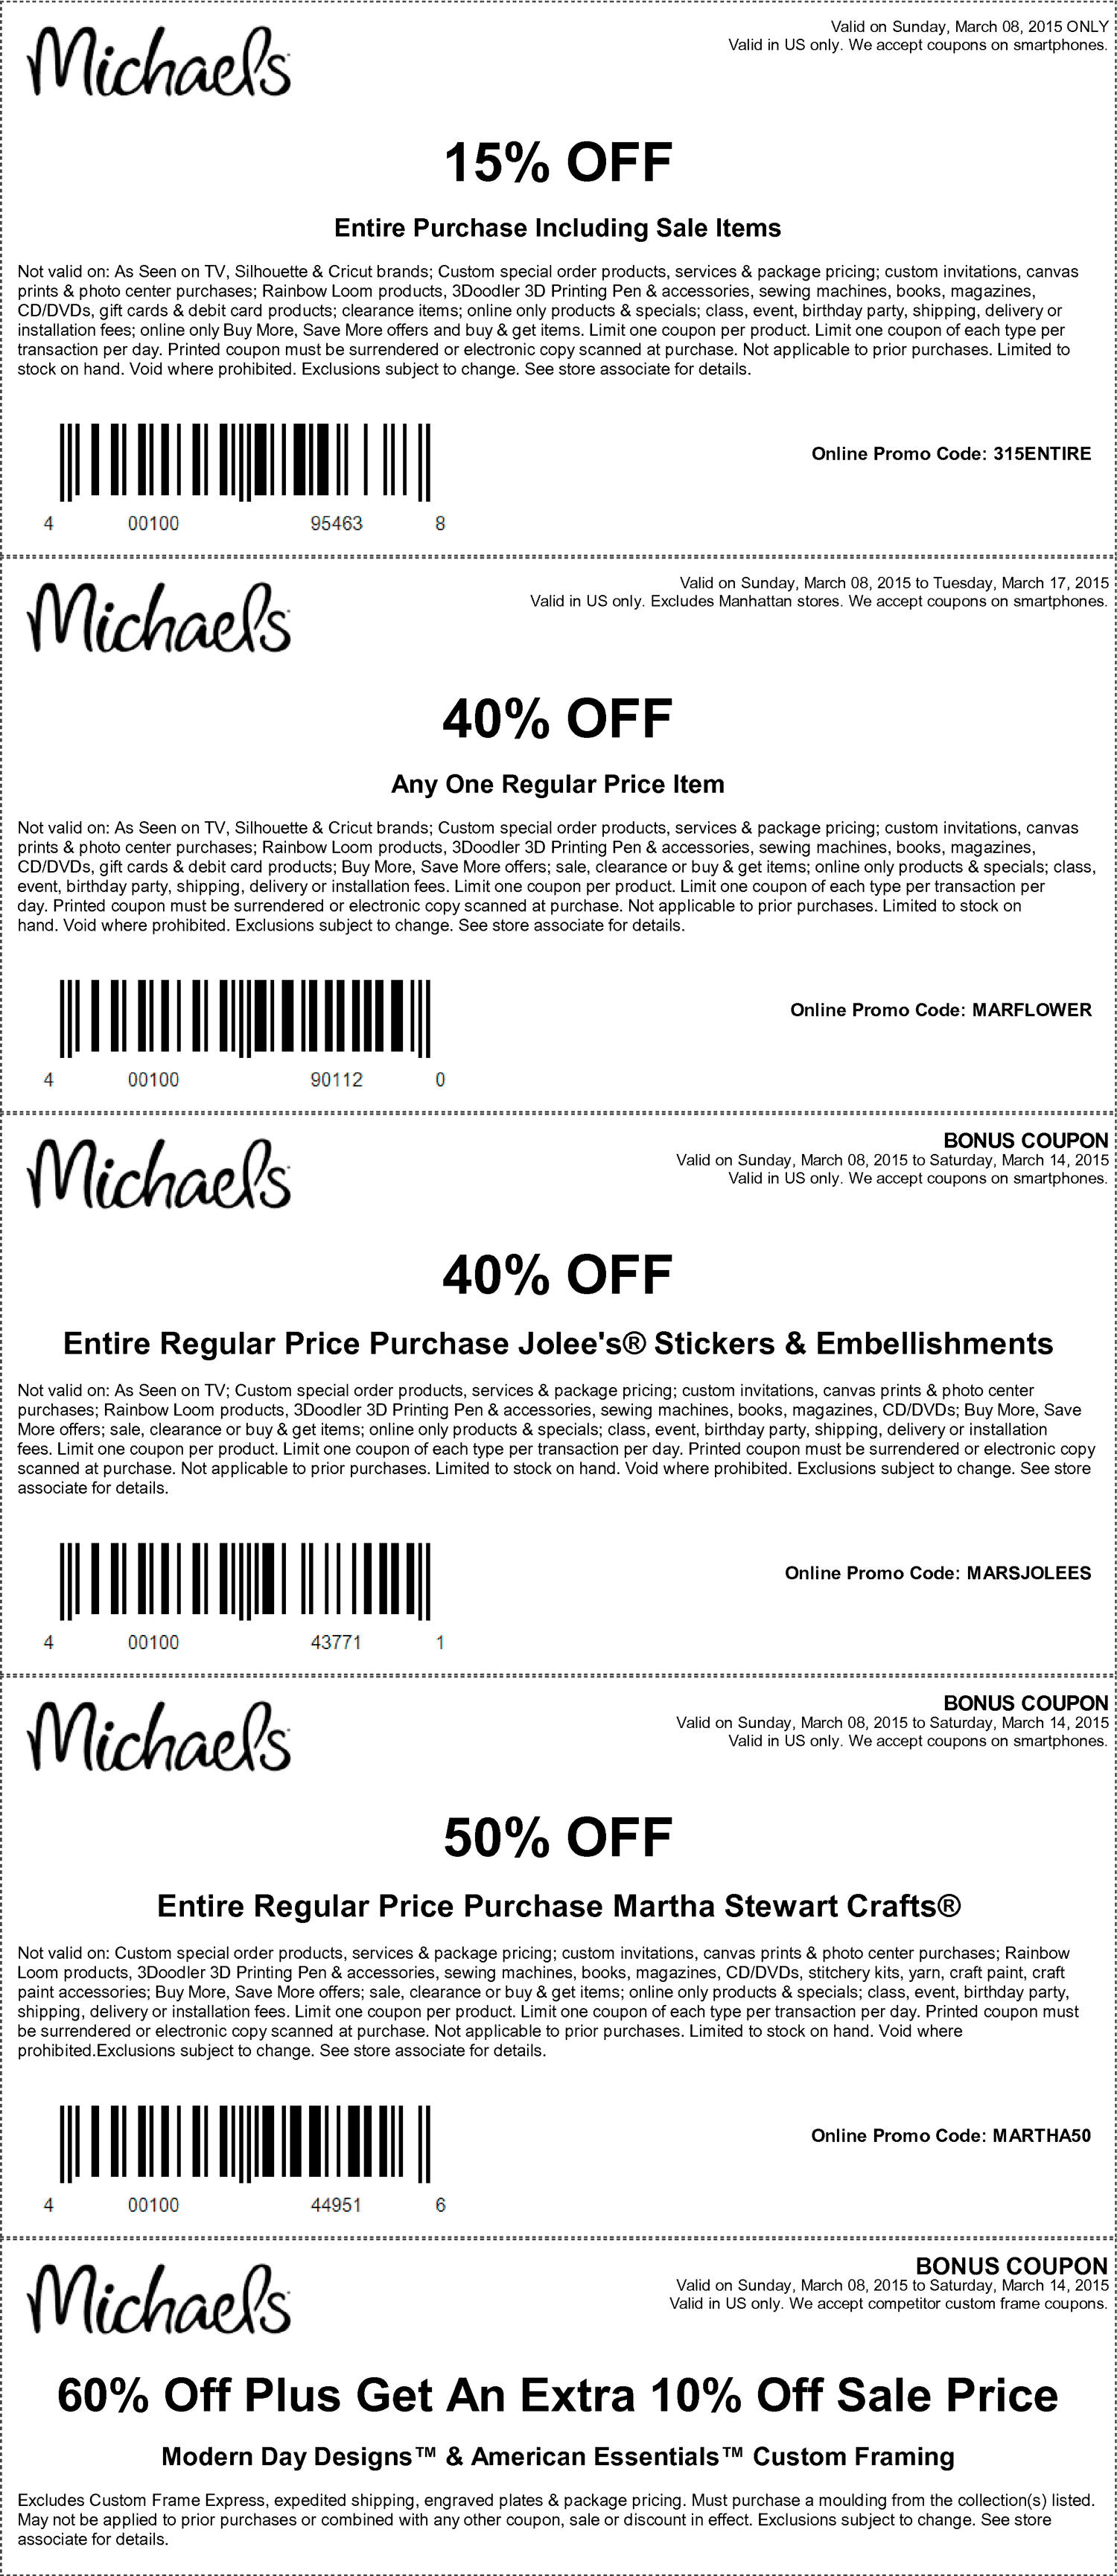 Michaels Coupon April 2018 15-40% off at Michaels, or online via promo code MARFLOWER